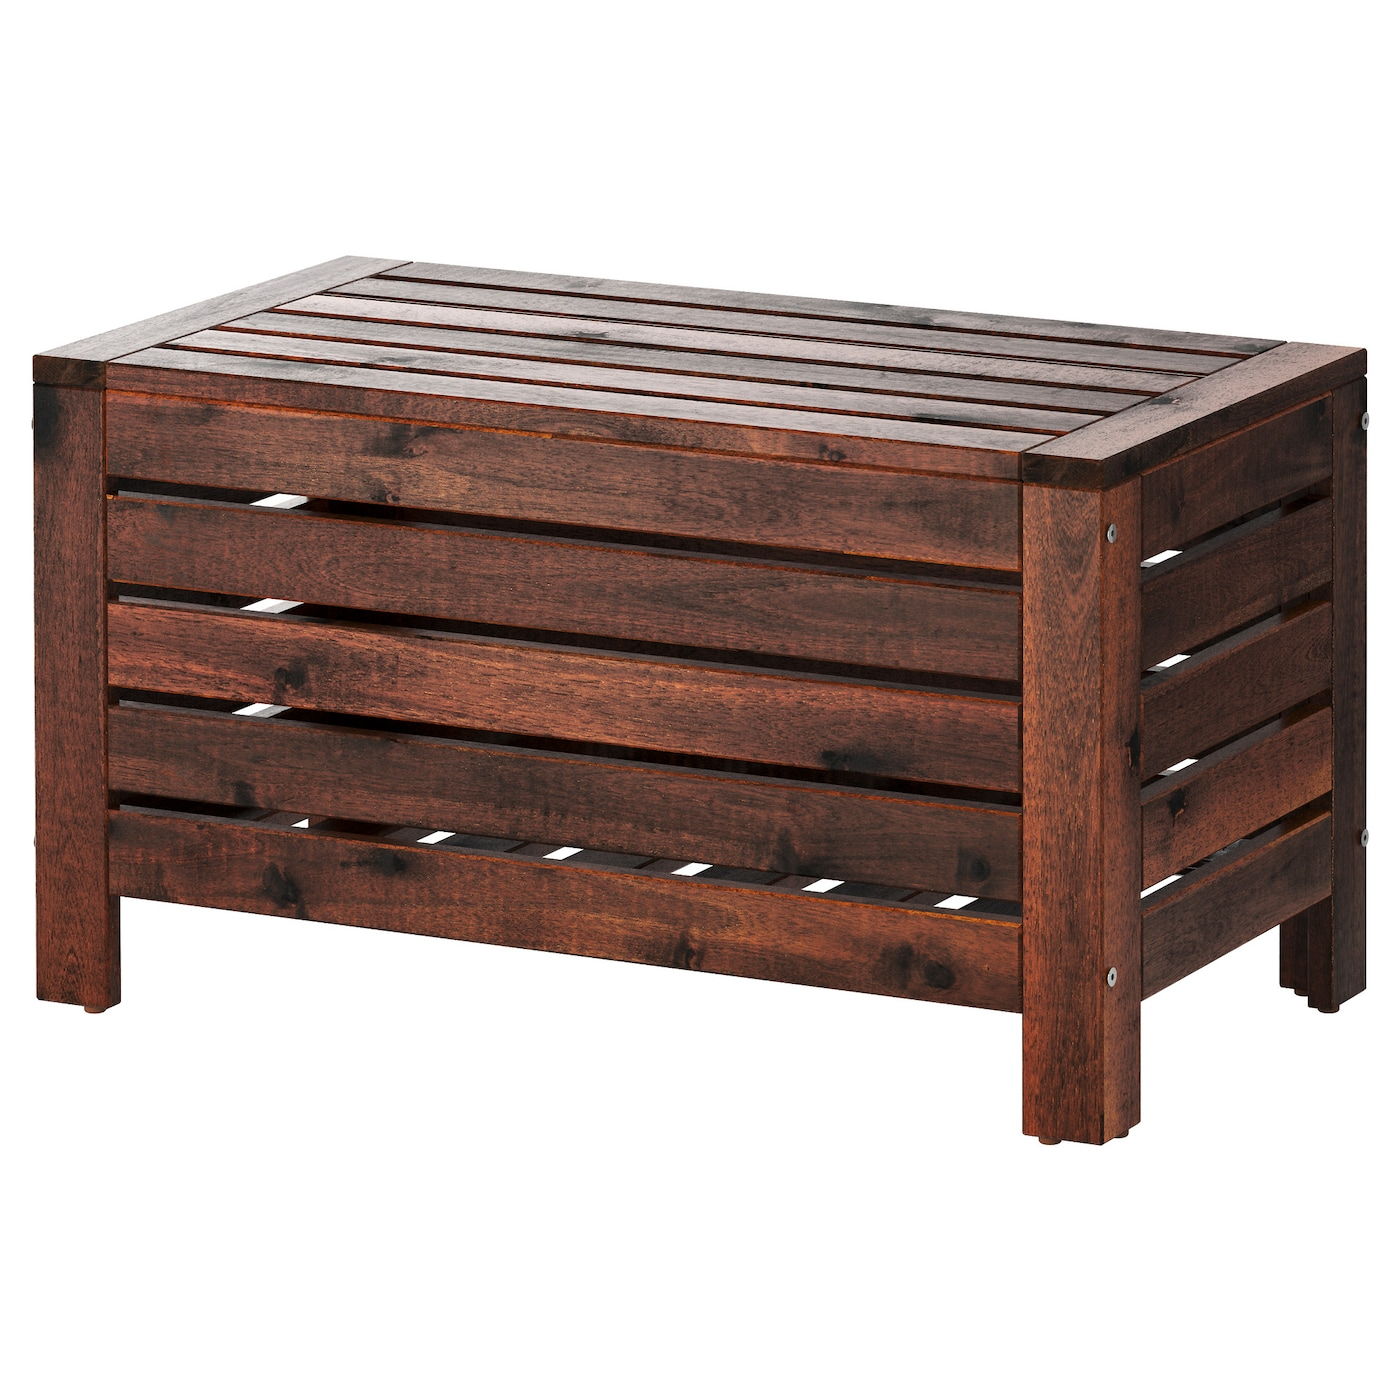 Pplar storage bench outdoor brown stained 80x41 cm ikea - Cassapanca in legno ikea ...